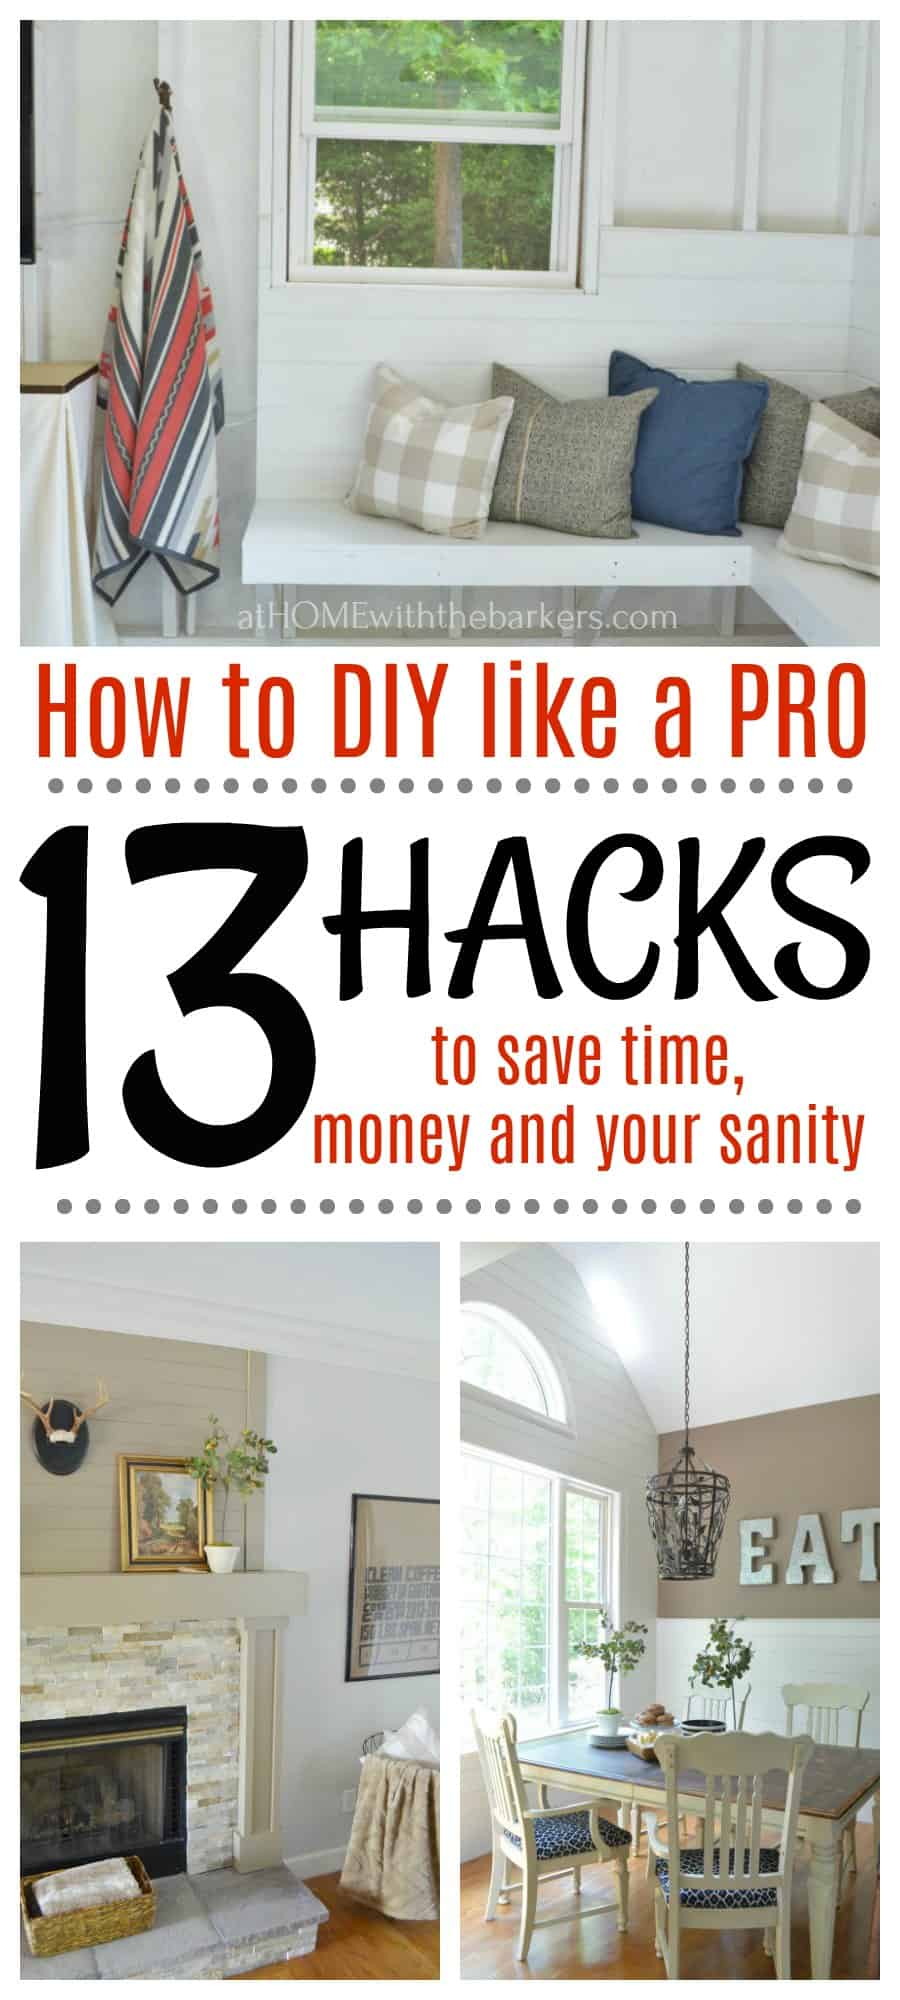 13 DIY Facts You Need to Know